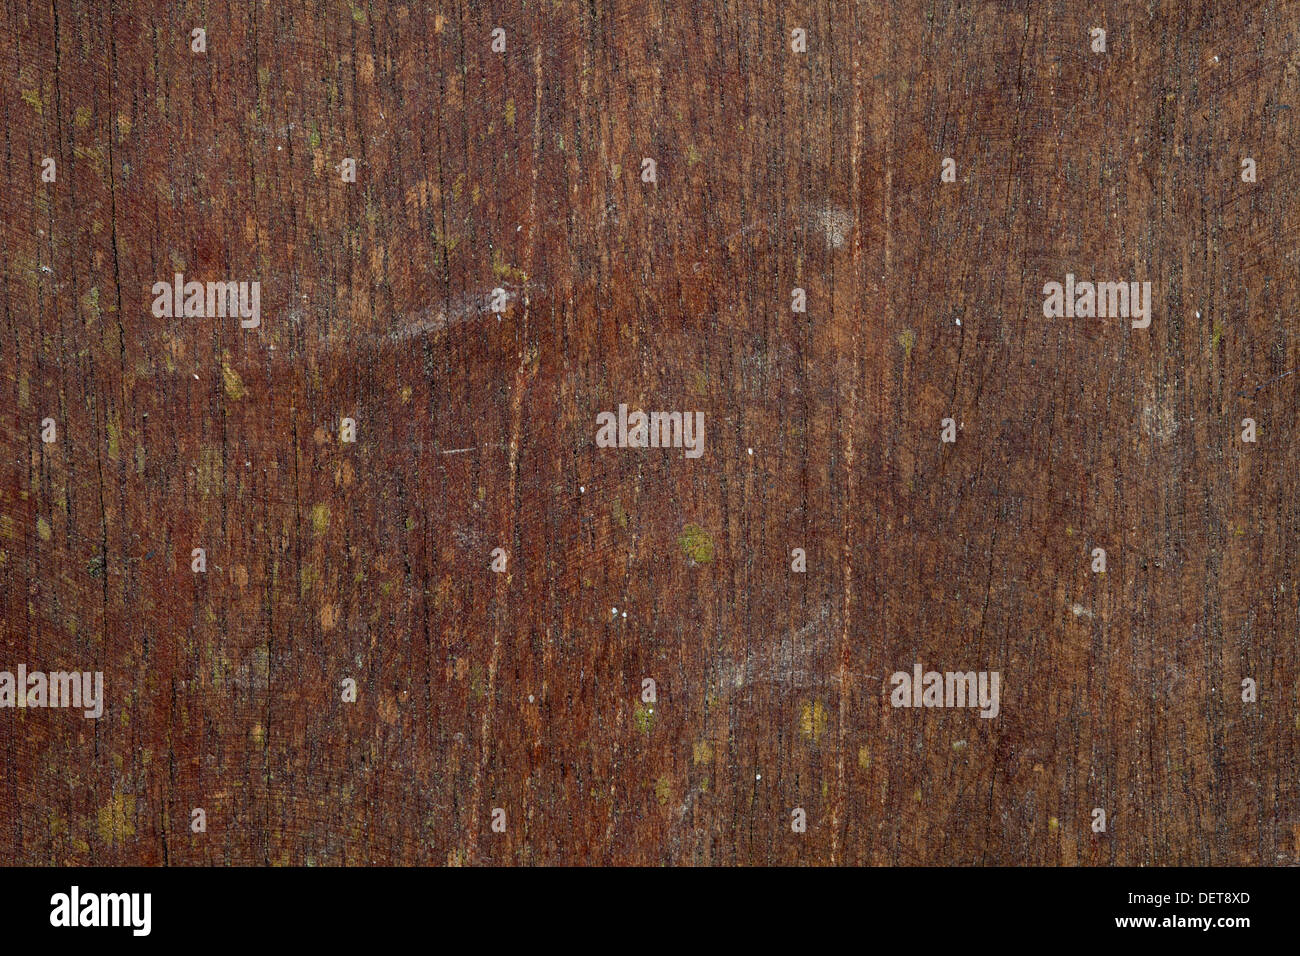 Line Texture Color : Wood texture color shape volume line contrast background